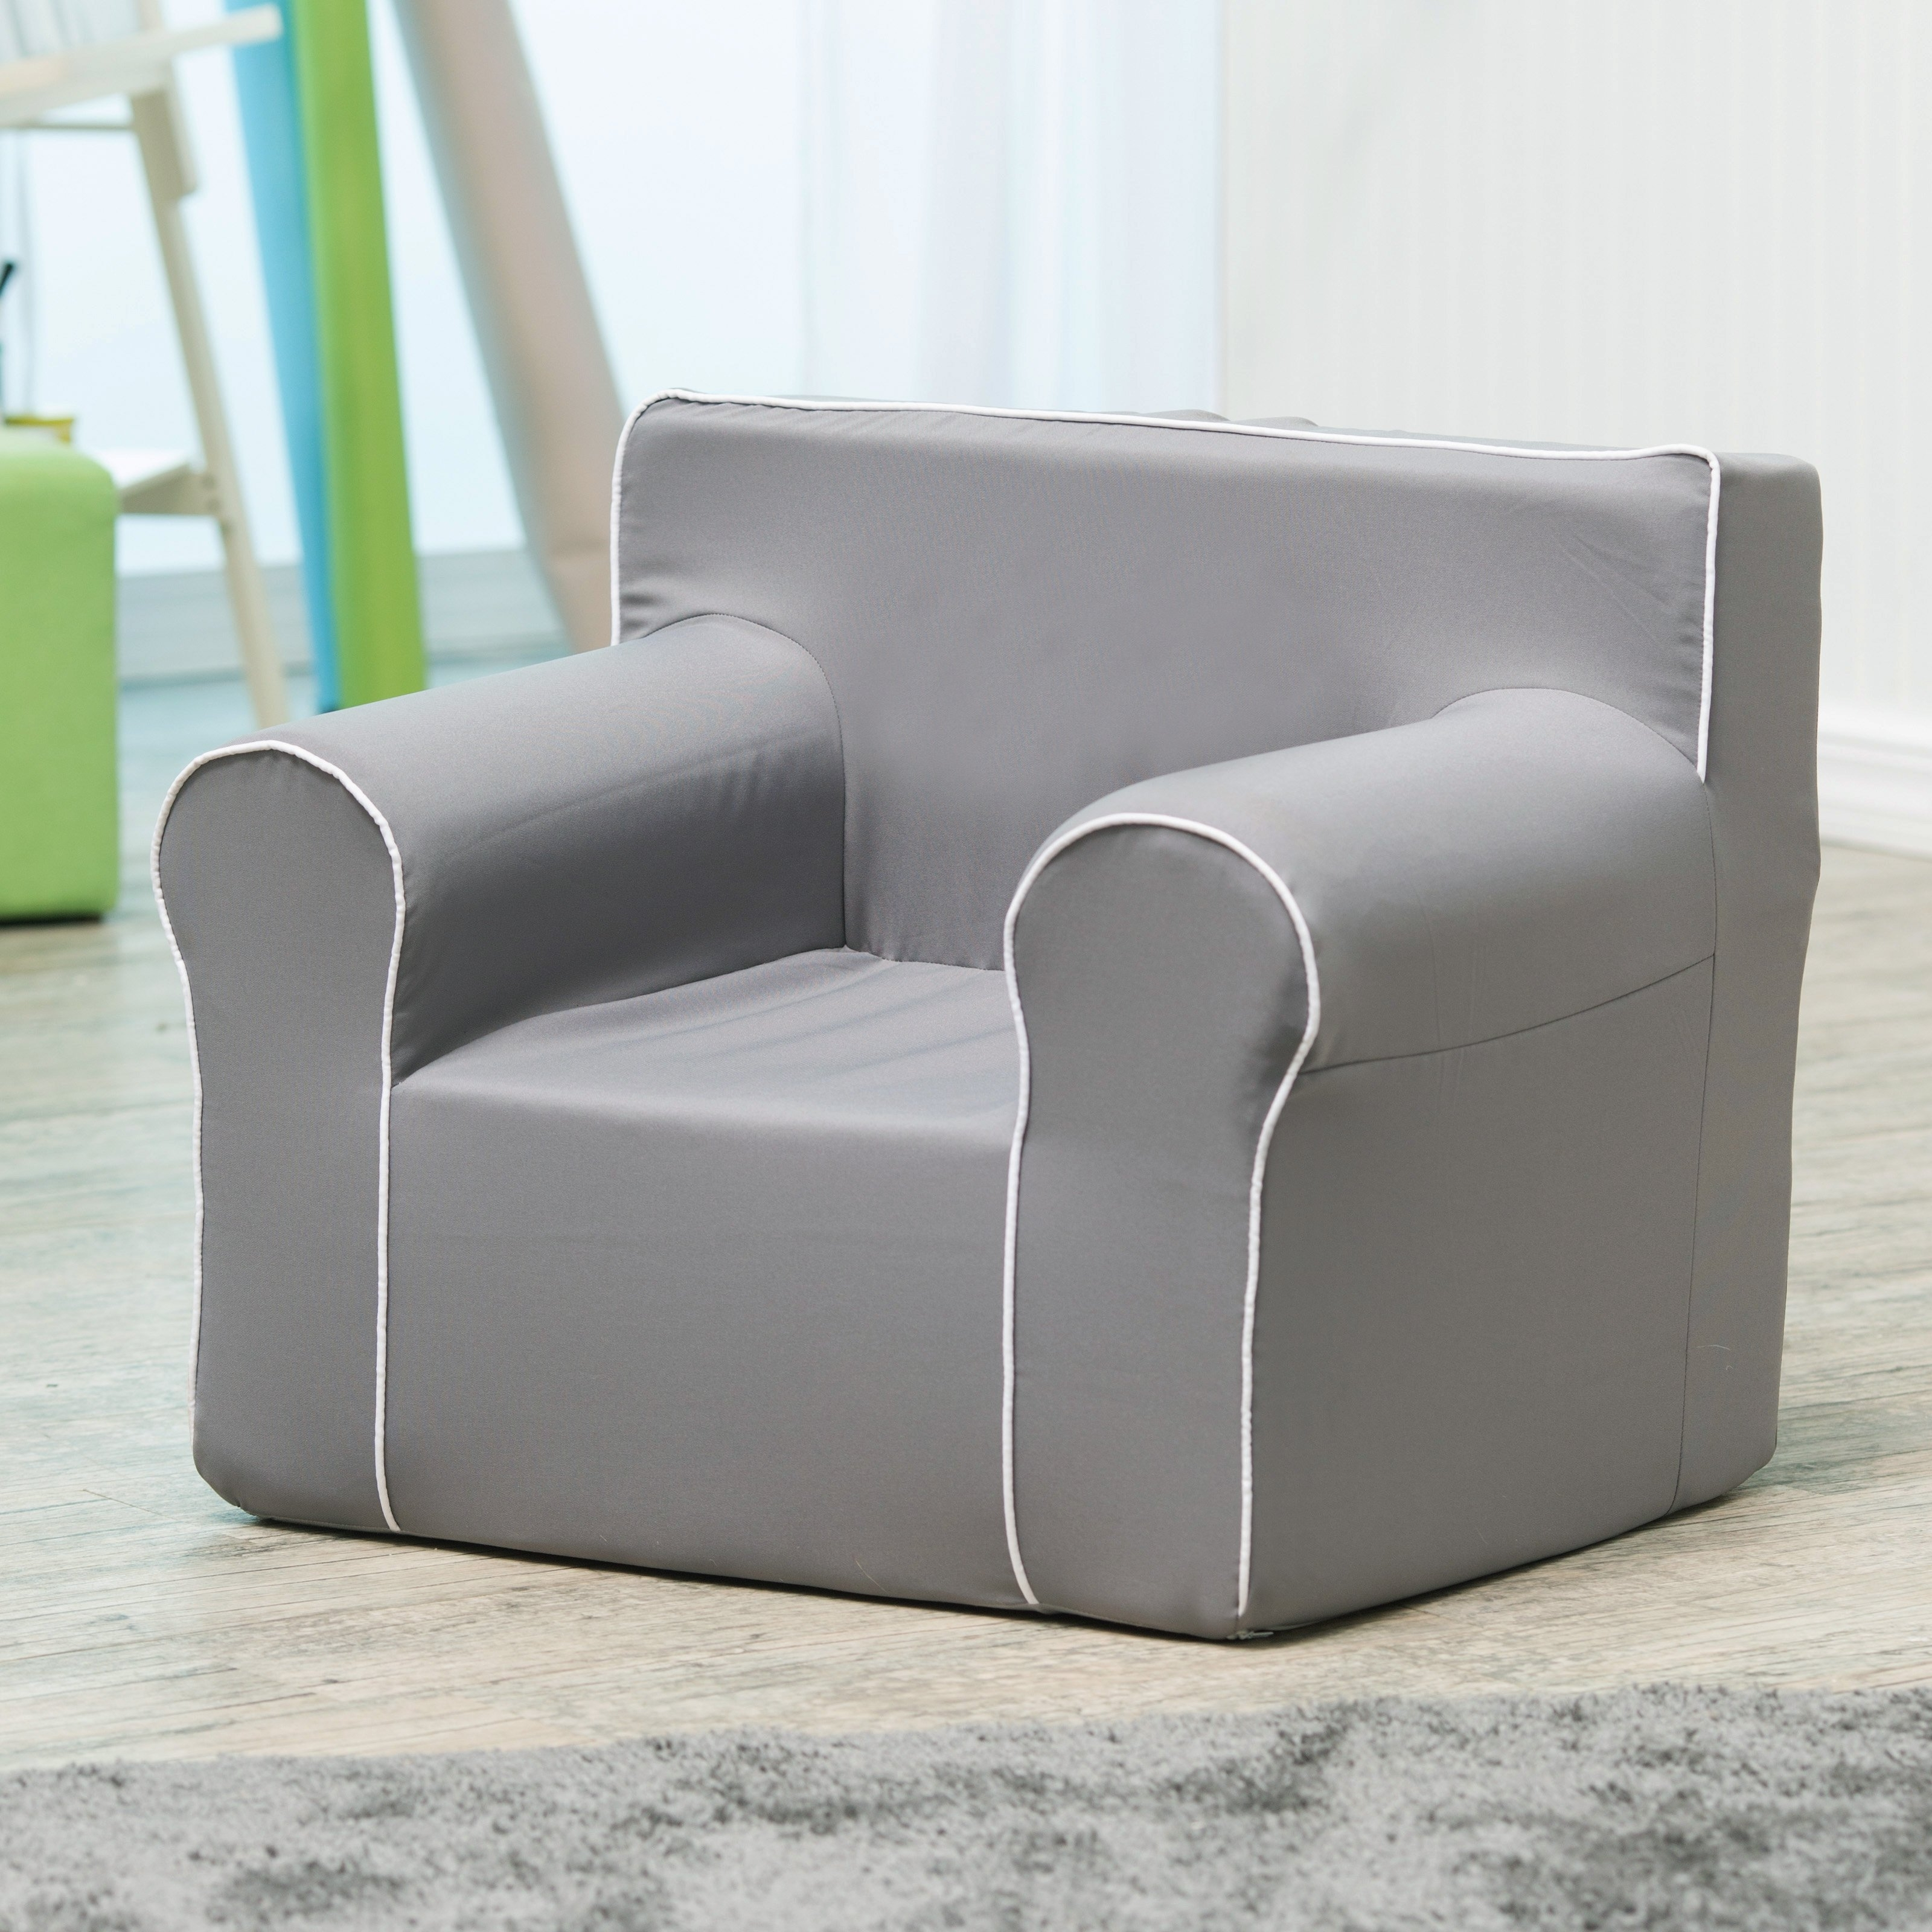 Personalized Kids Chairs And Sofas With Recent Here And There Personalized Kids Chair – Gray Canvas (View 10 of 20)